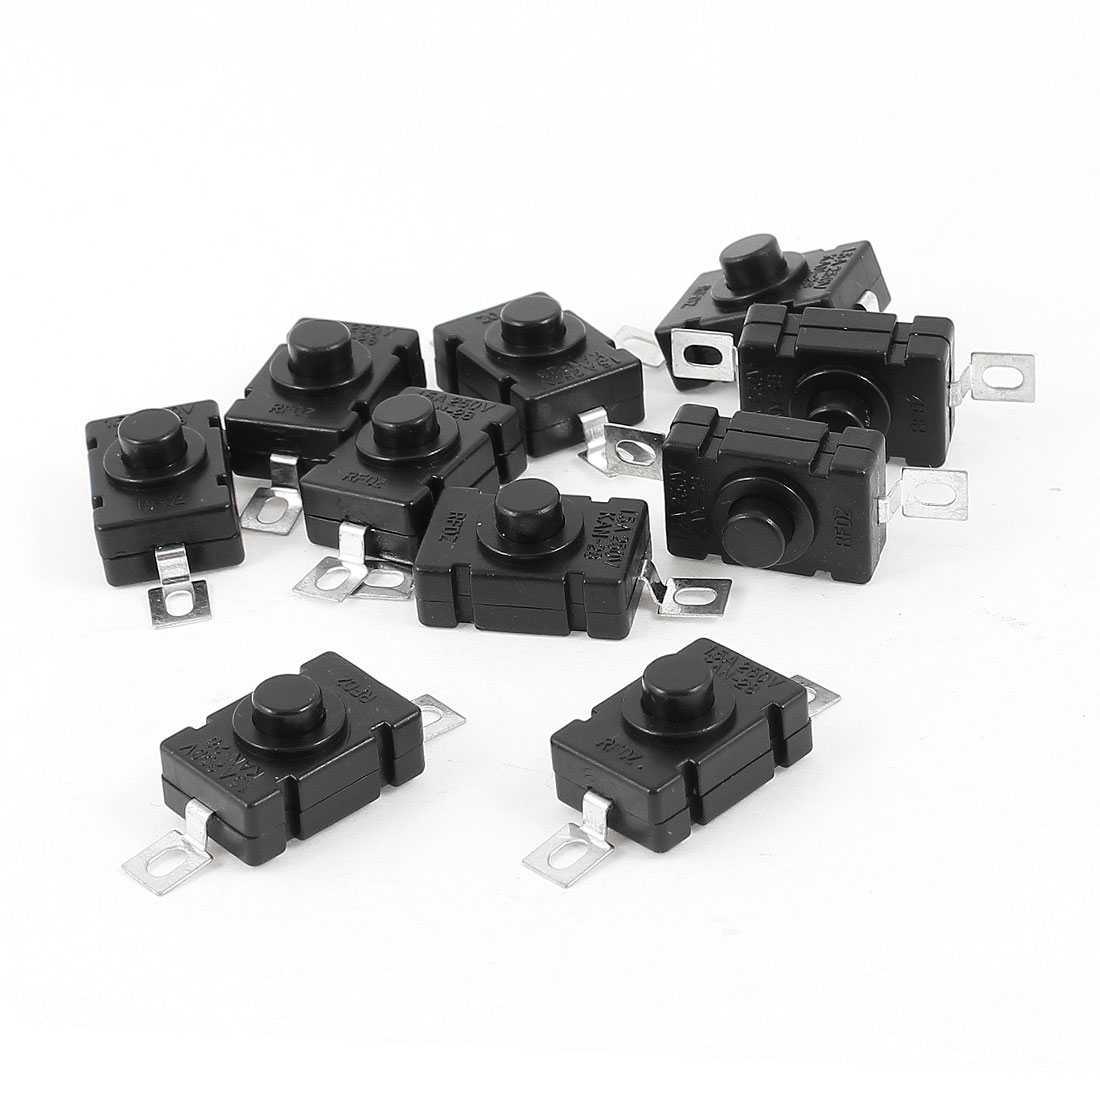 10 Pcs 1.5A 250VAC Push Button Self Latching Tact Switch 18x12x10mm